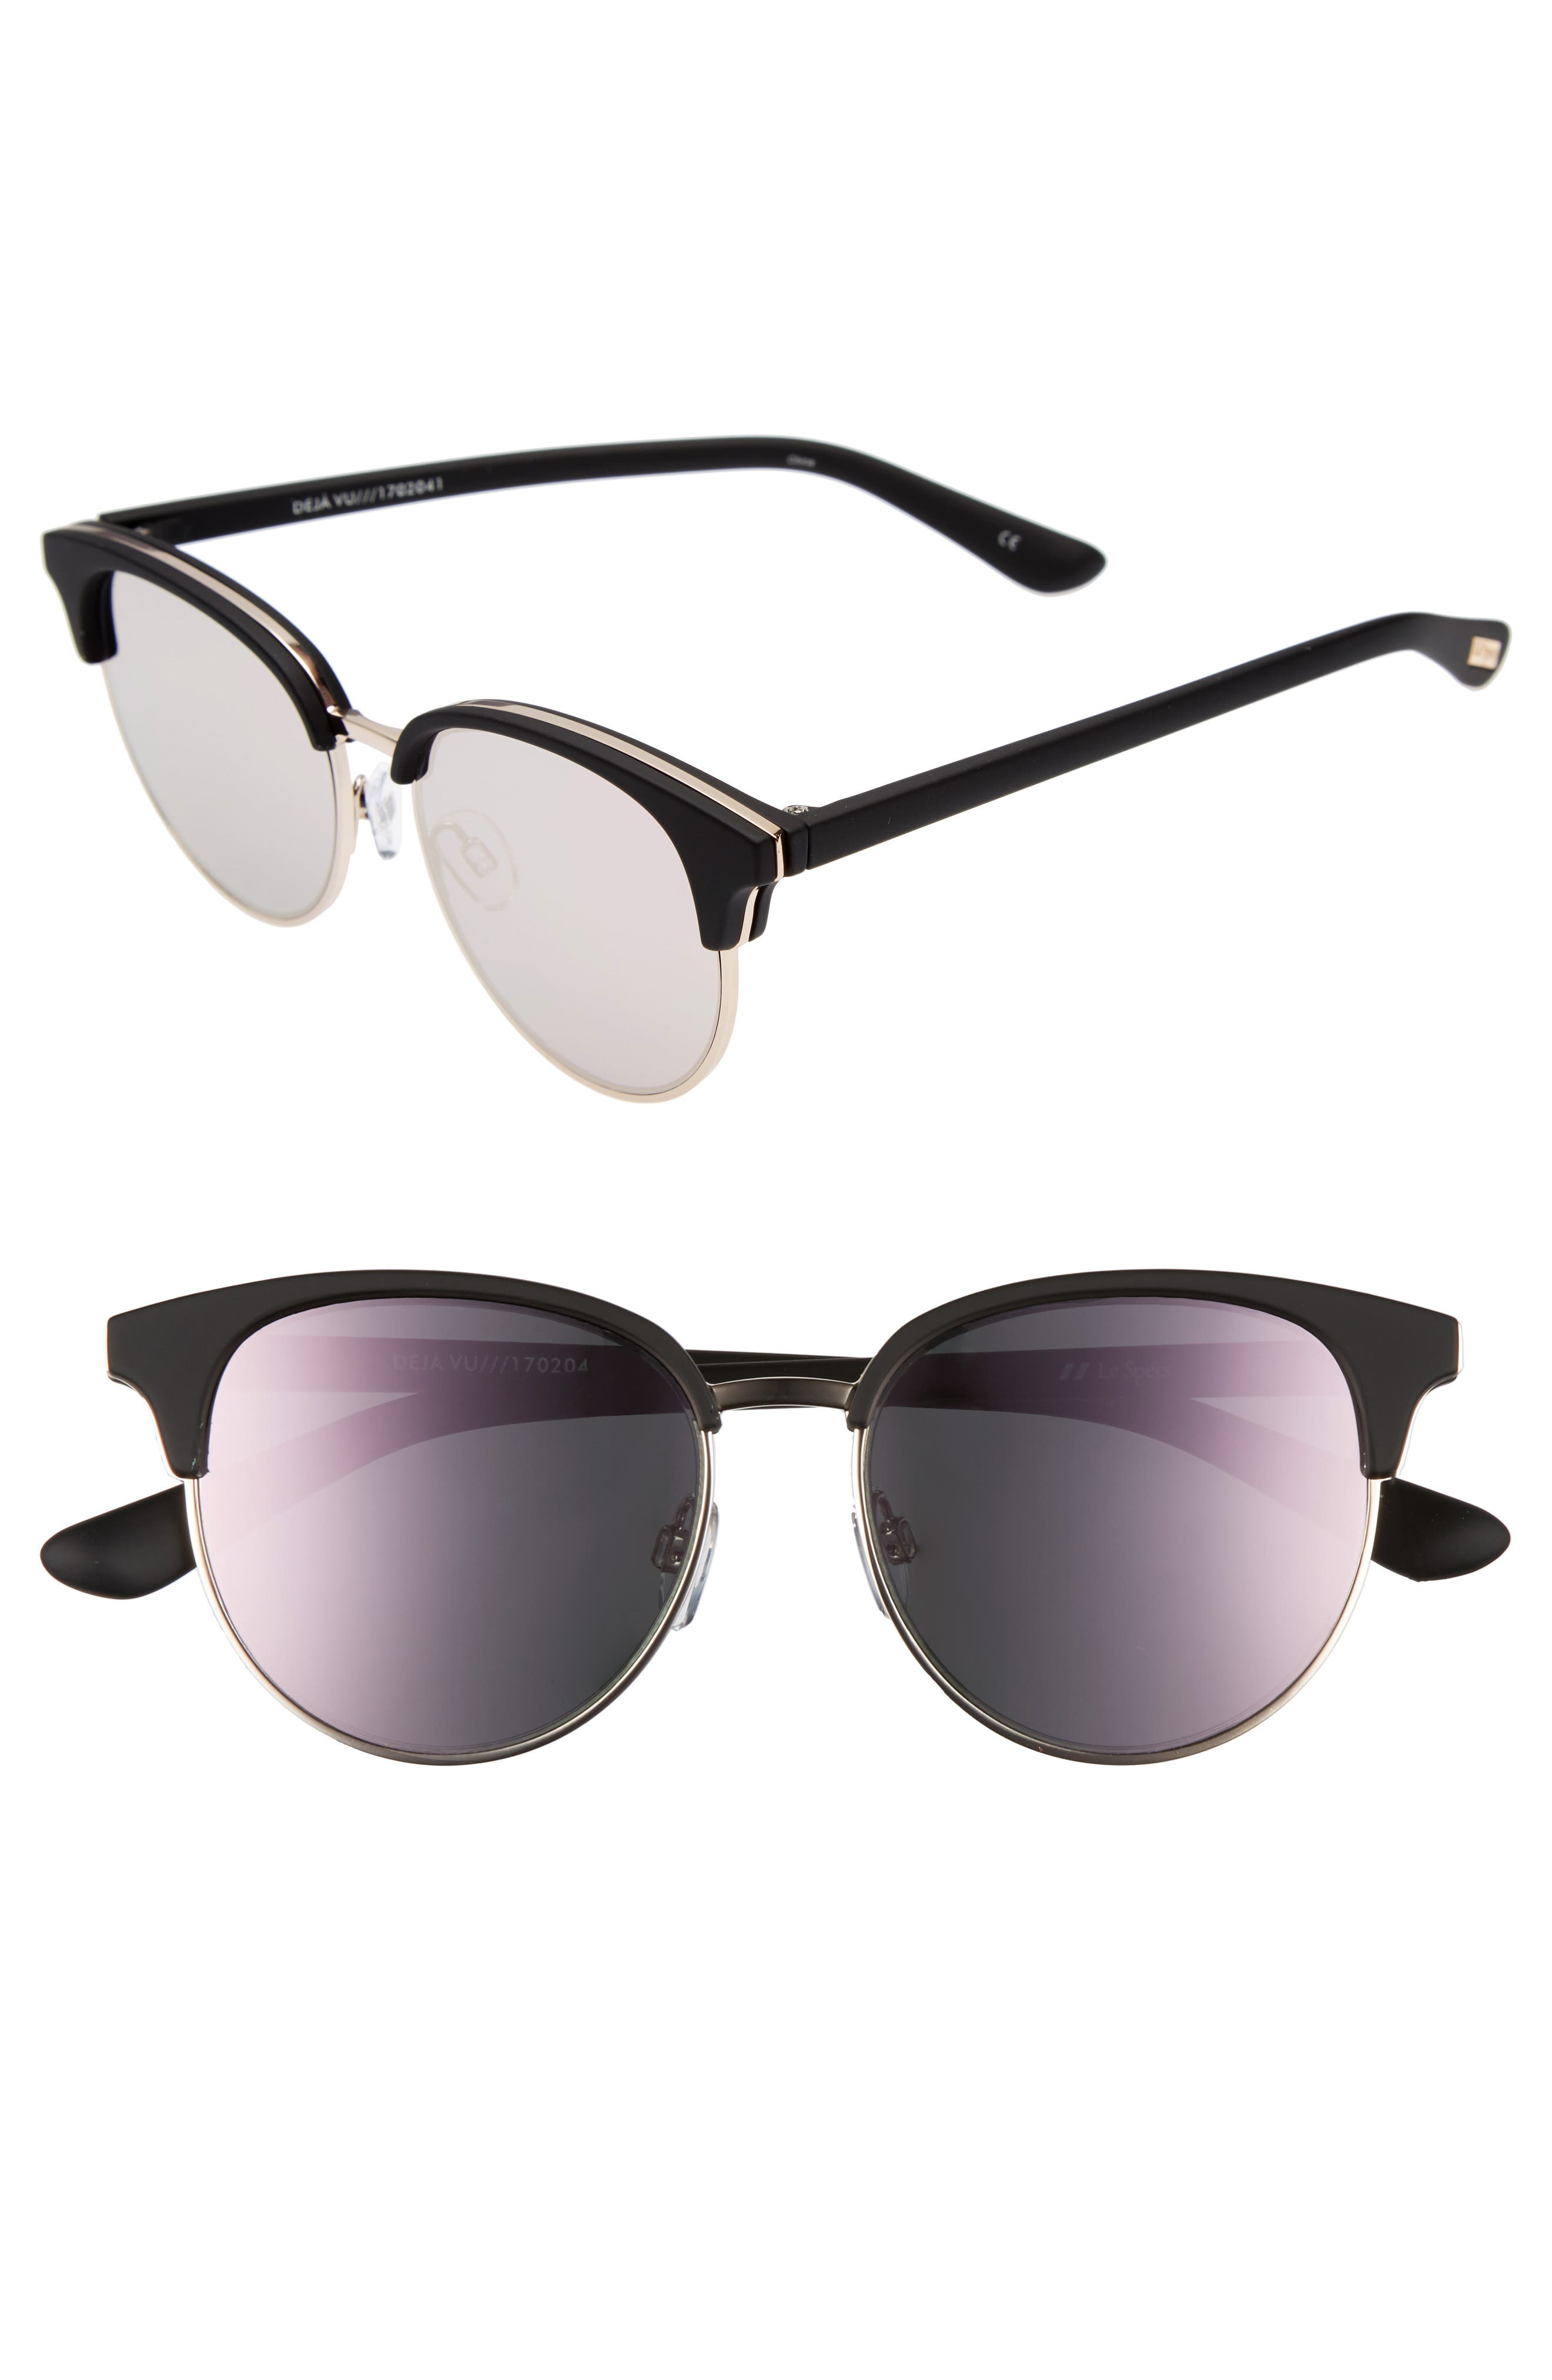 Deja Vu 51mm Round Sunglasses,                             Main thumbnail 1, color,                             Black Rubber